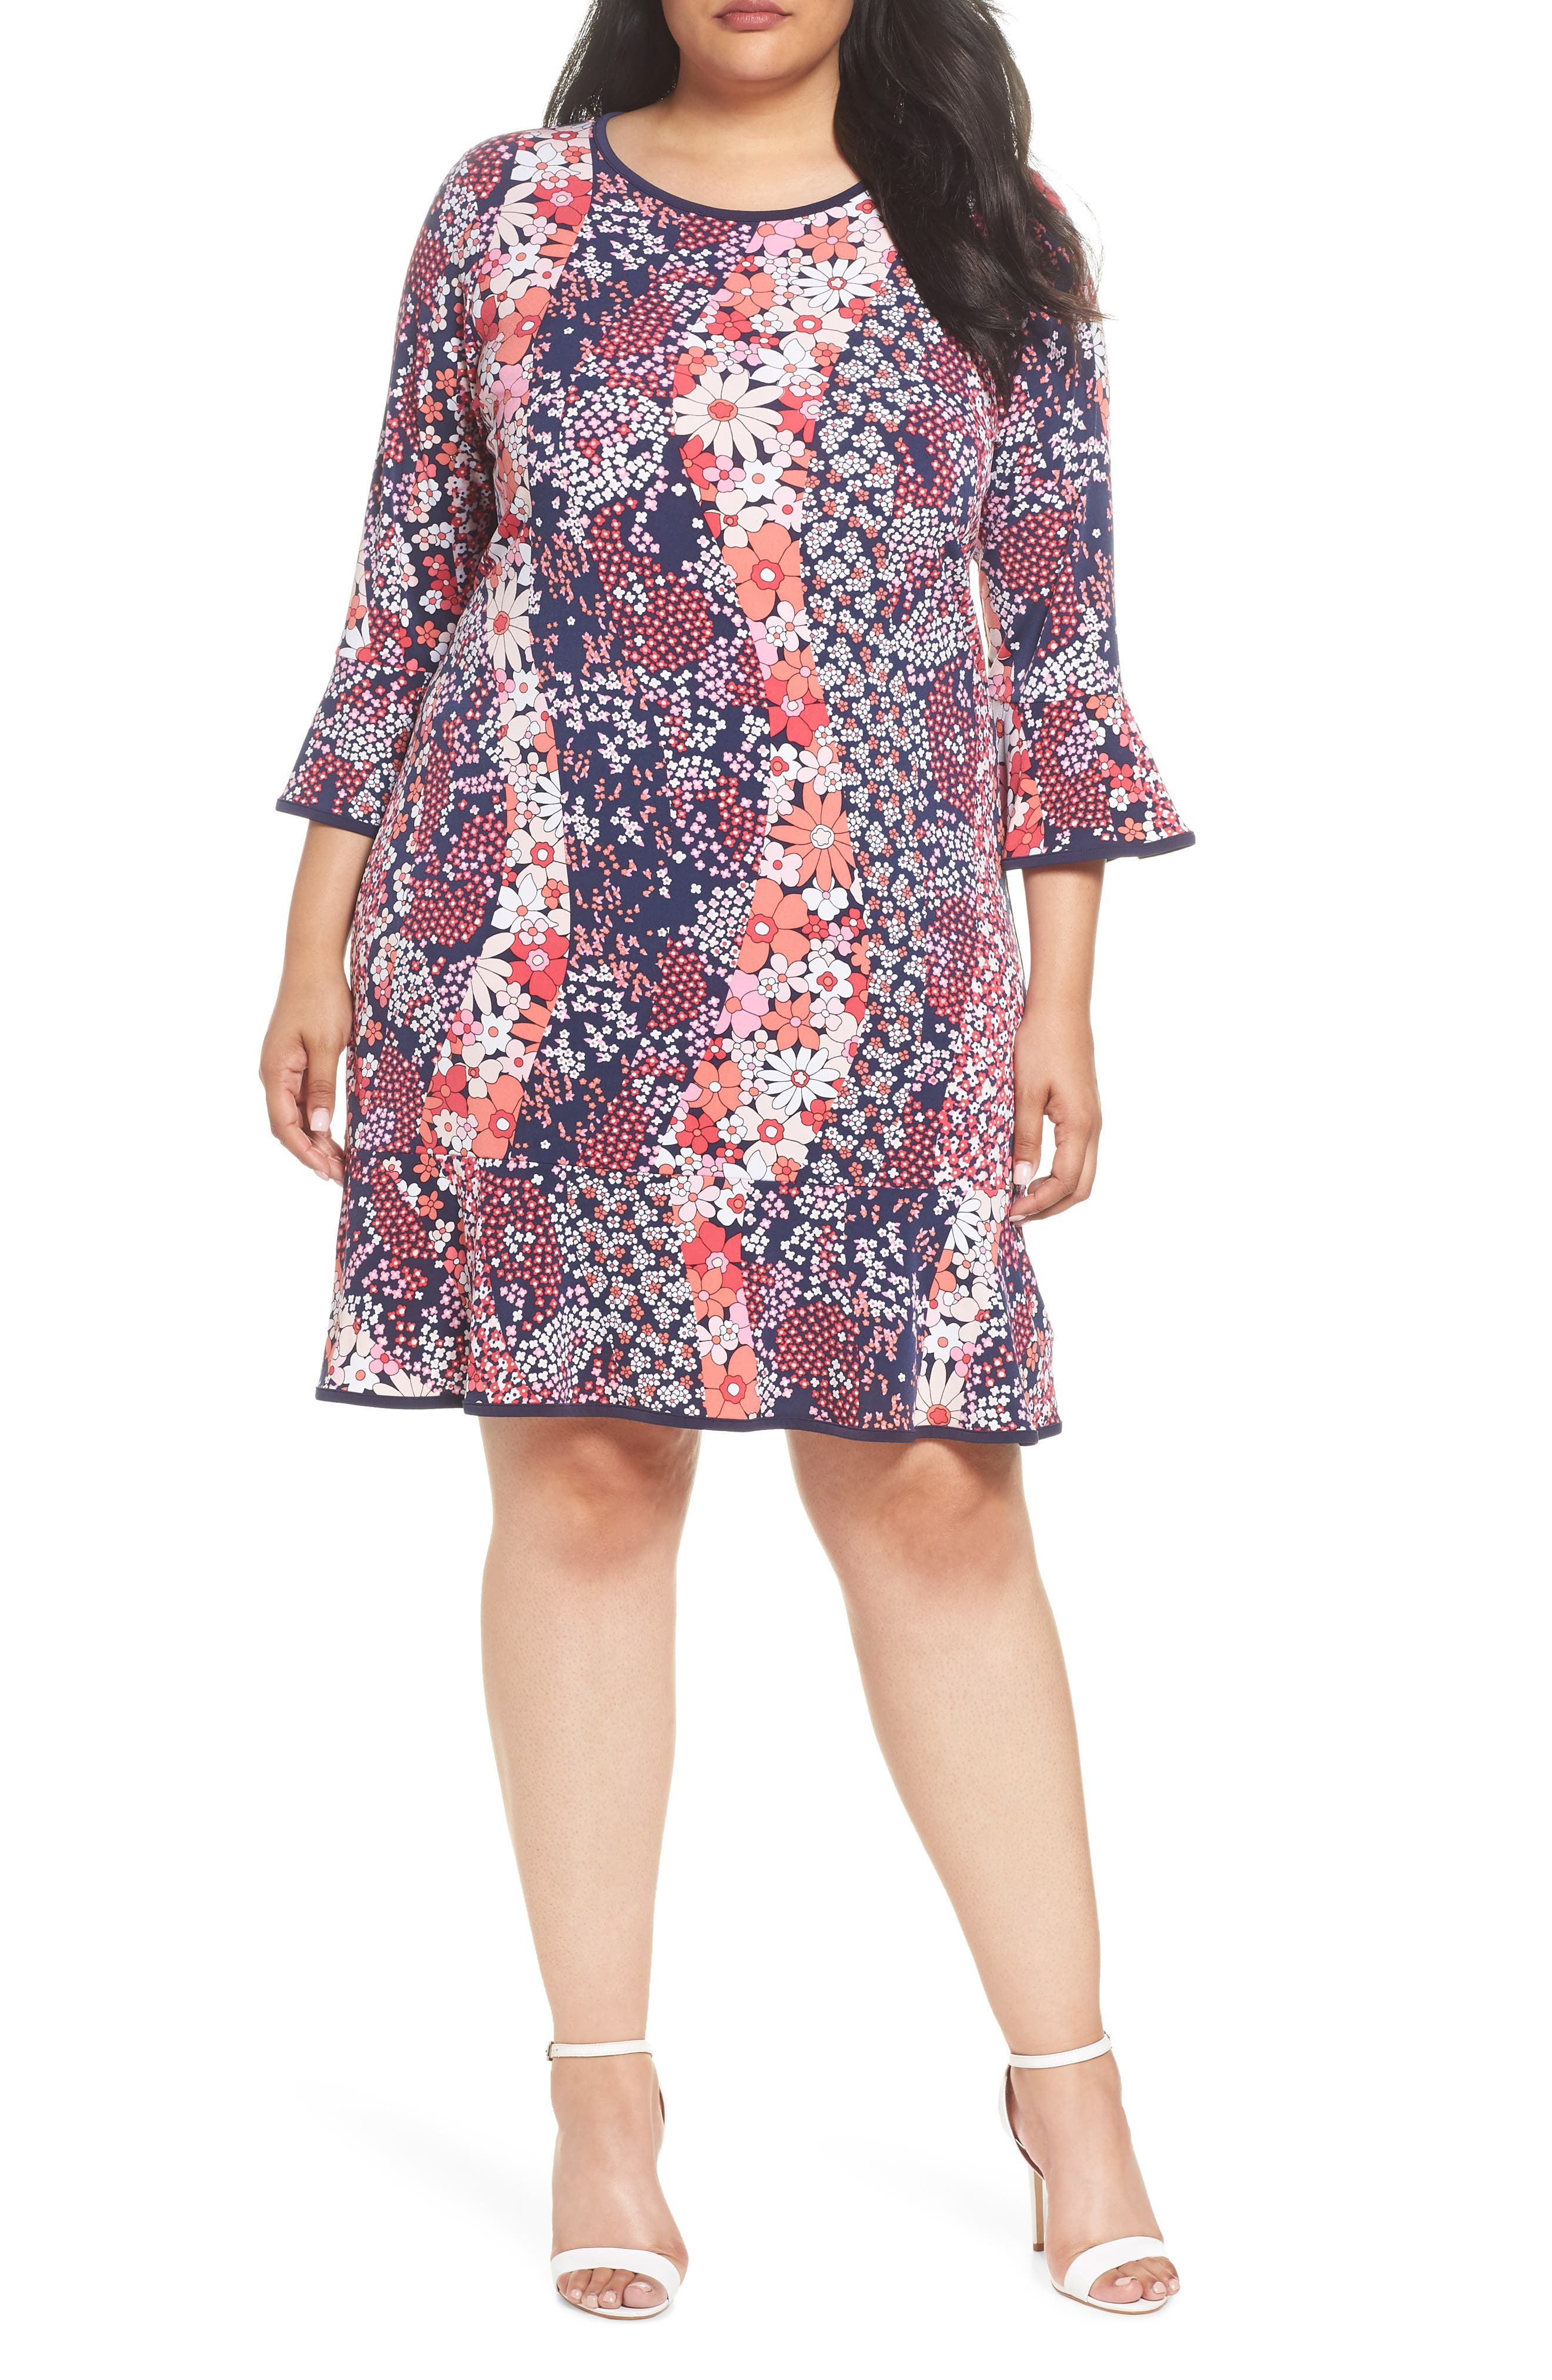 Patchwork Floral Bell Sleeve Shift Dress,                         Main,                         color, True Navy/ Bright Blush